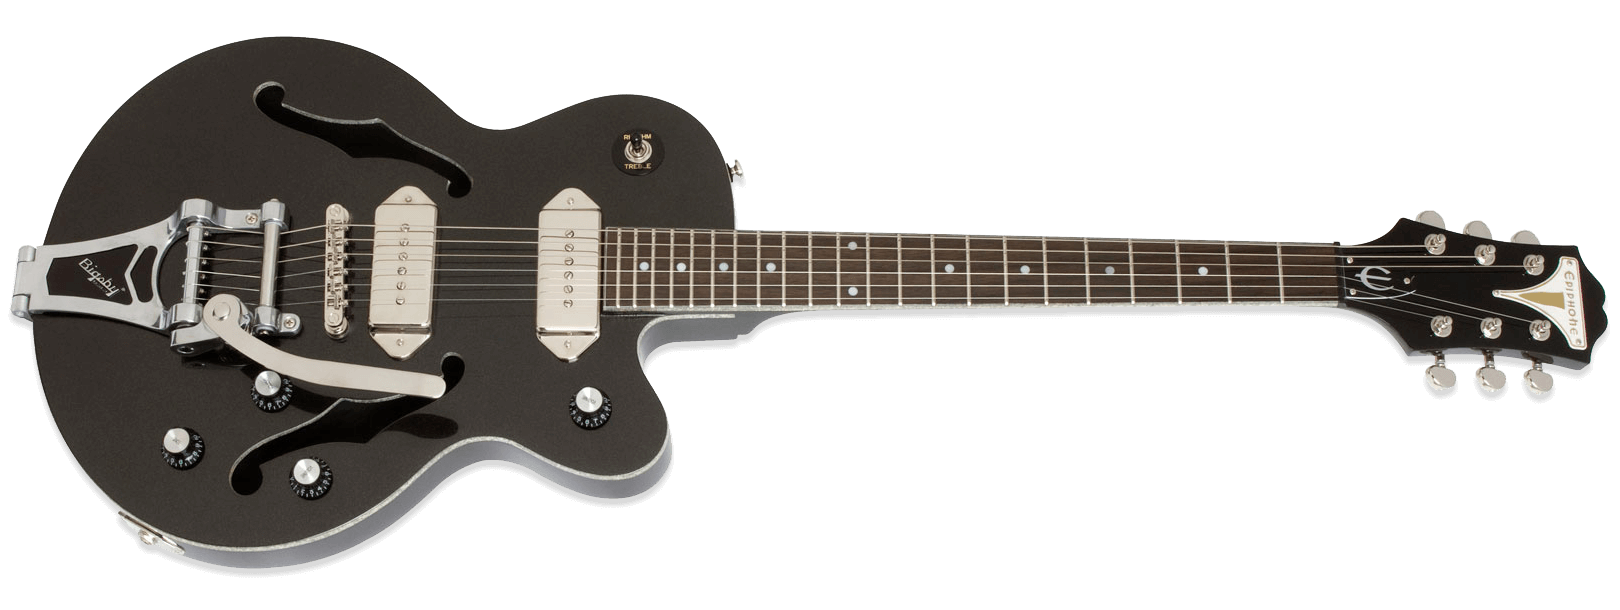 Epiphone Wildkat Black Royale